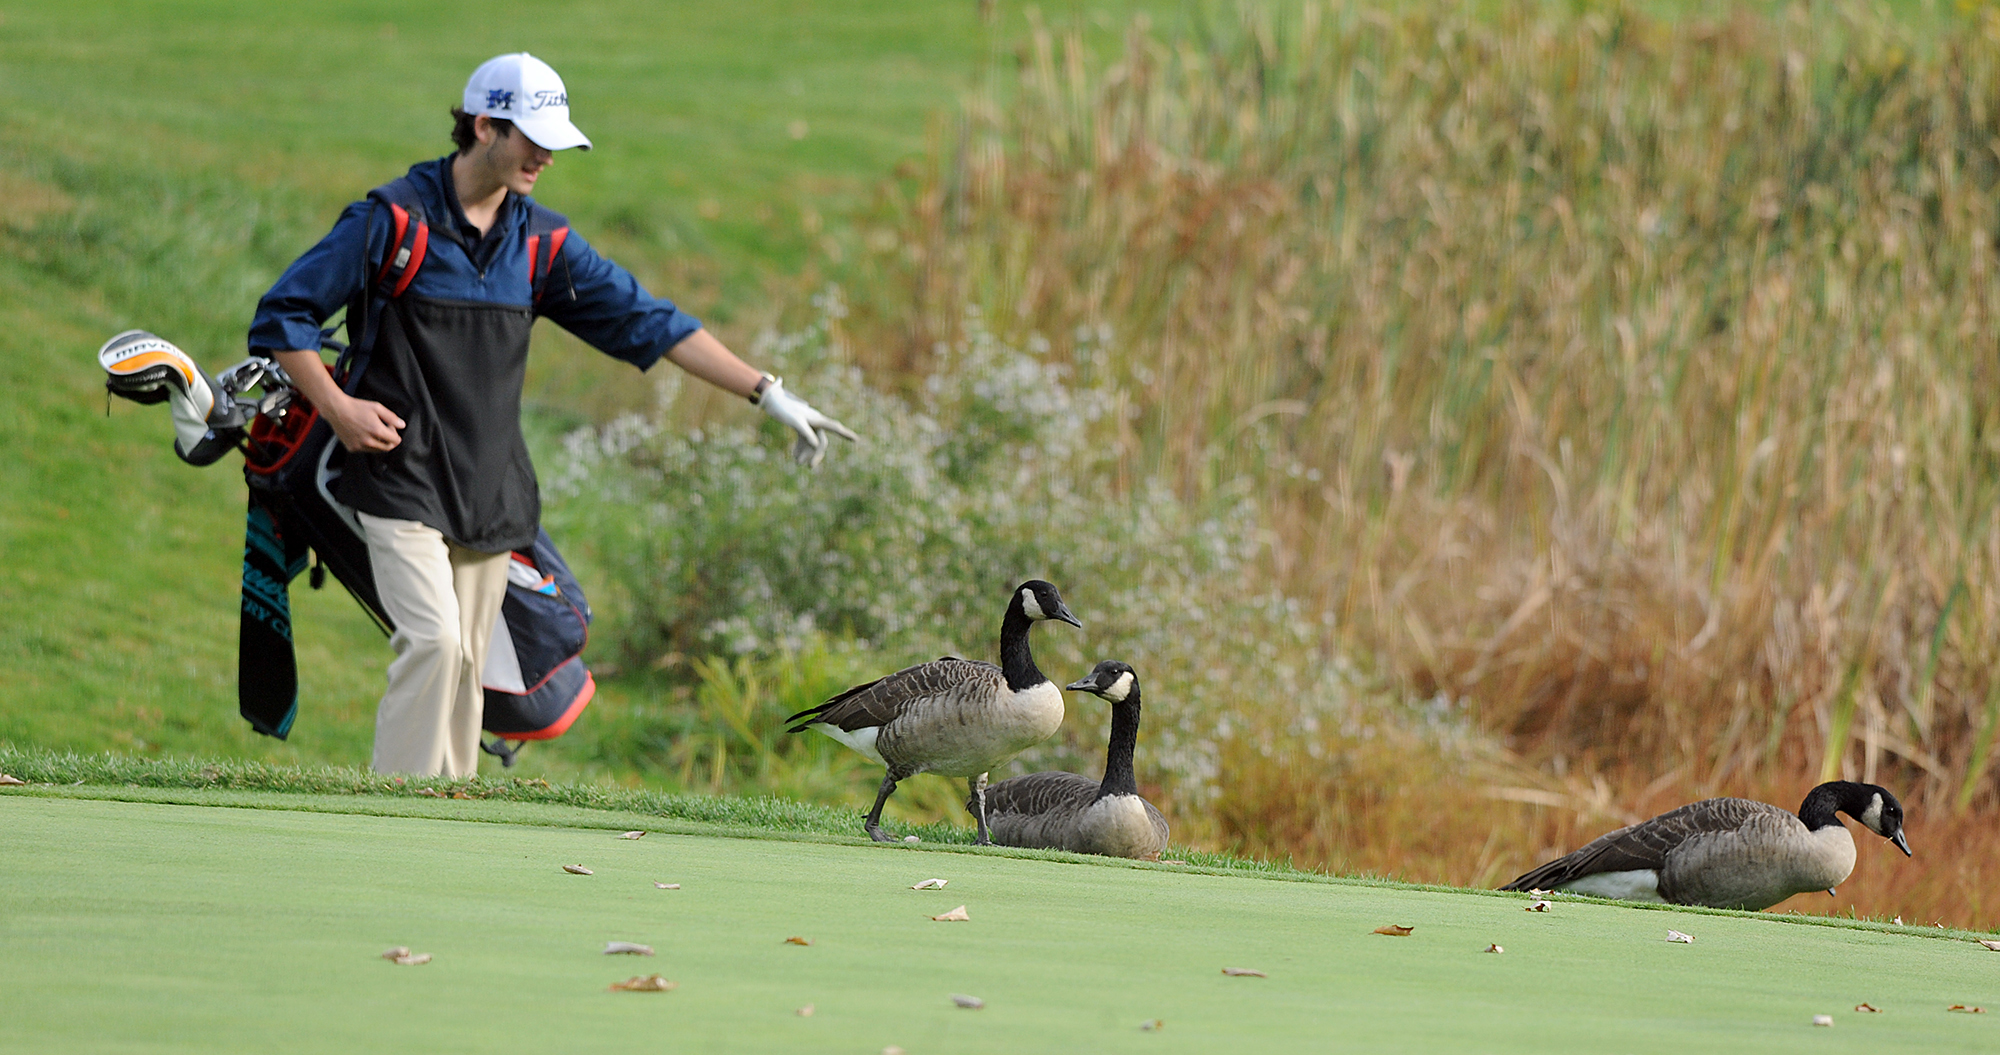 10/2/20 BELLINGHAM  -  Medway High School senior Jack McMullin points to his golf ball behind a few Canadian geese during a match against Bellingham at New England Country Club on Friday. [Daily News and Wicked Local Staff Photo/Art Illman]